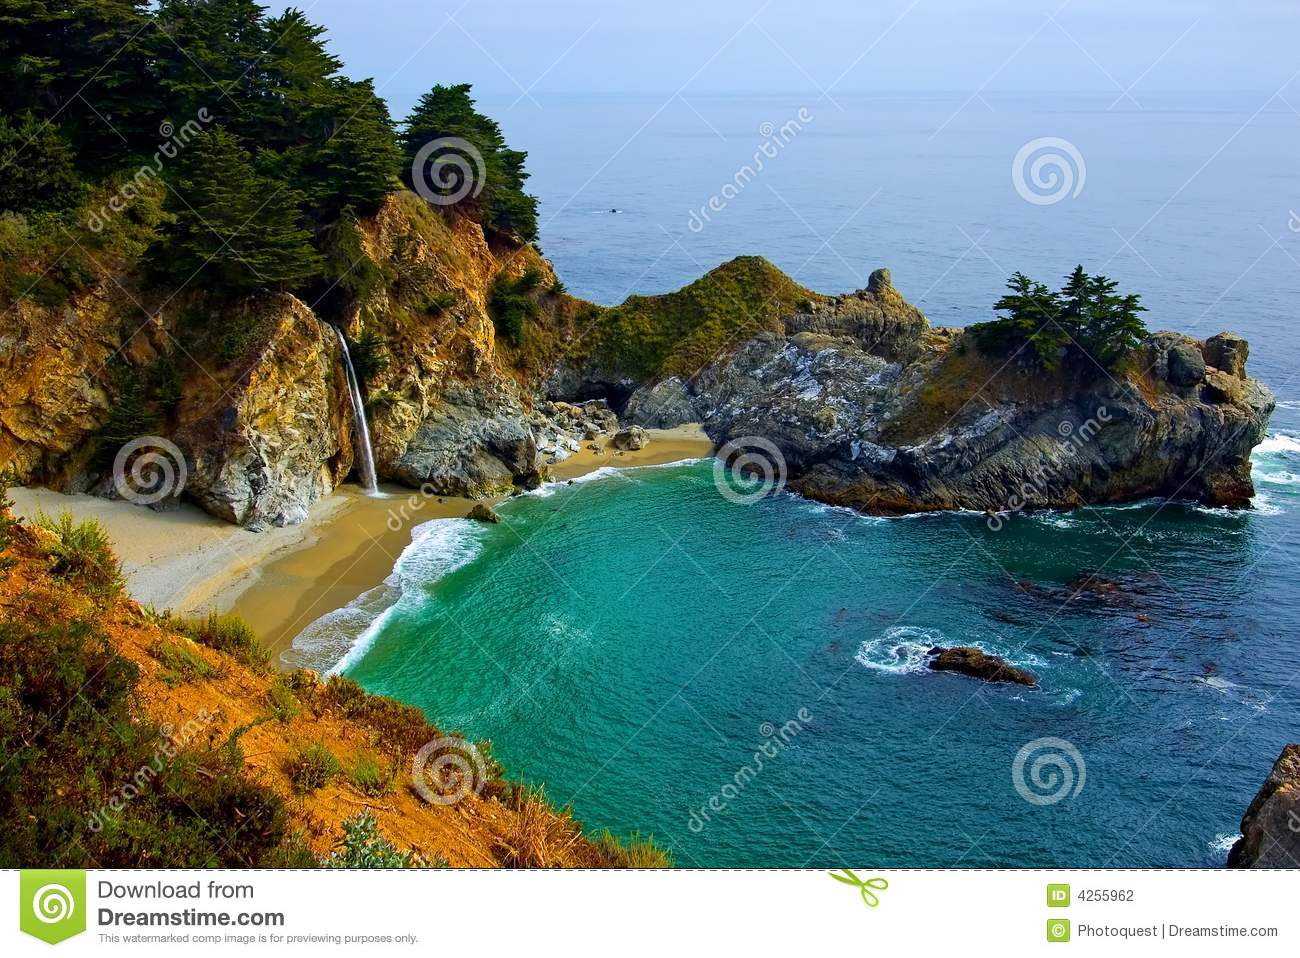 Mcway Falls clipart #17, Download drawings